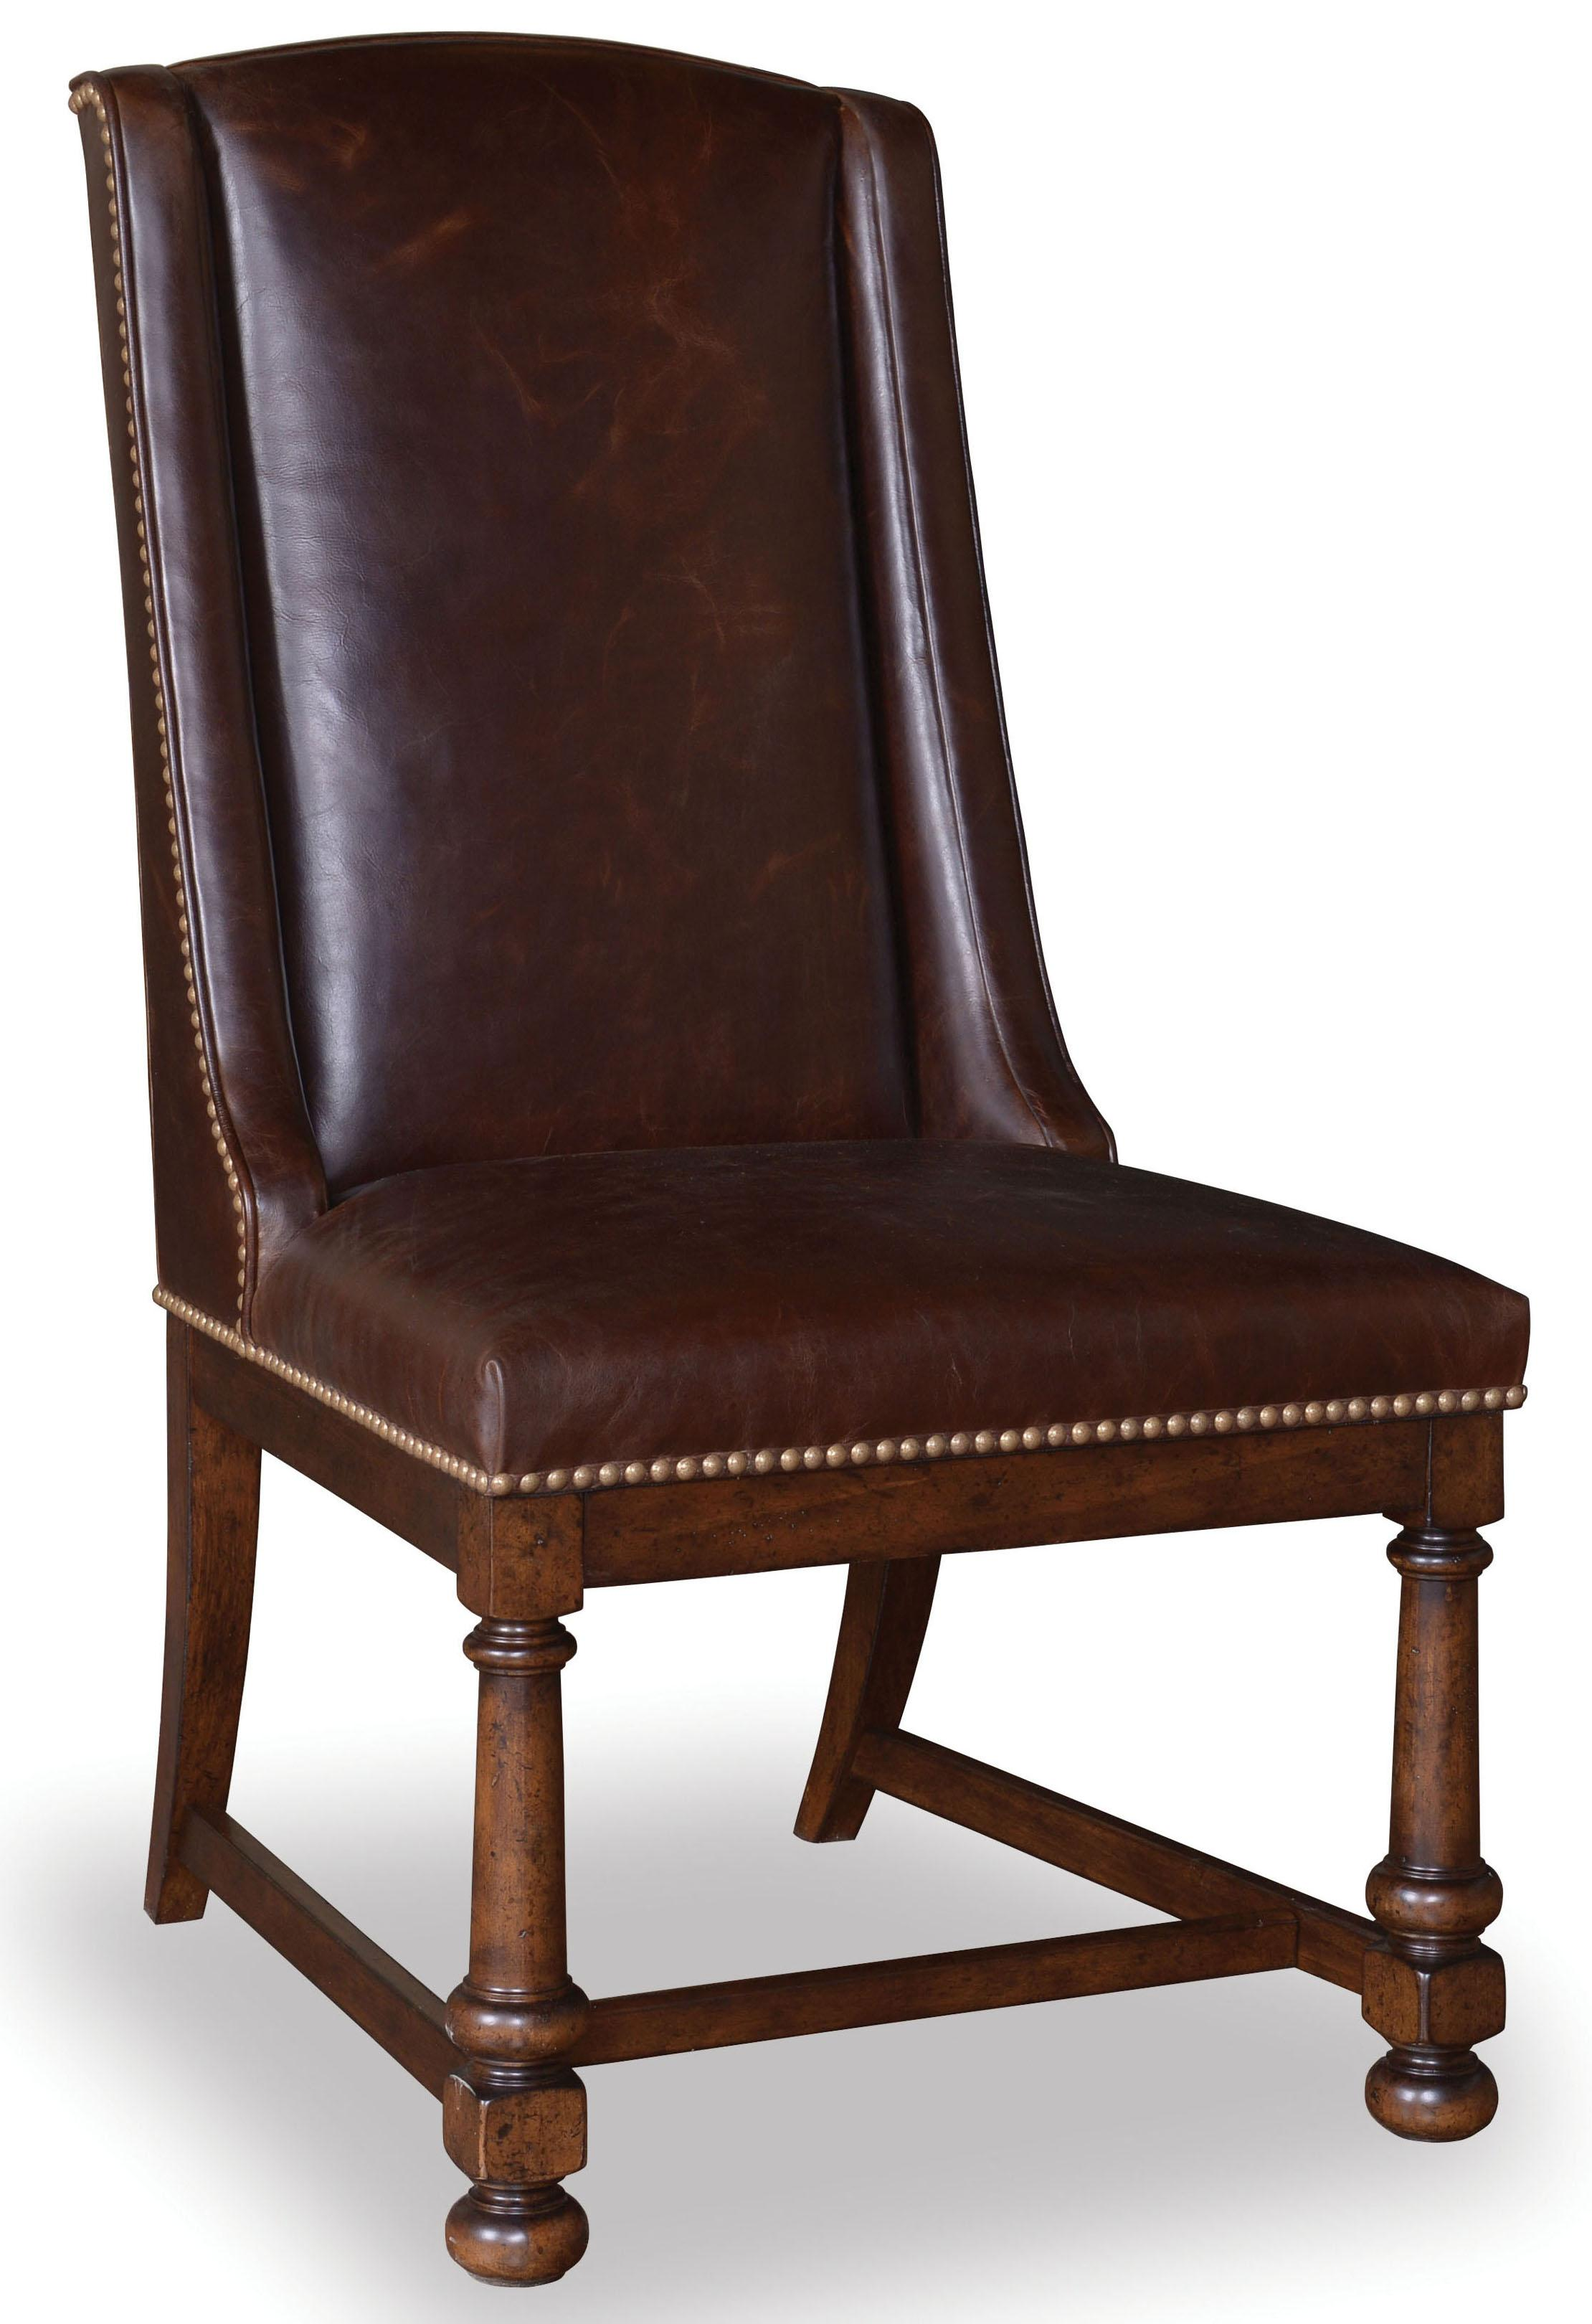 Belfort Signature Belvedere Leather Side Chair - Item Number: 205200-2304